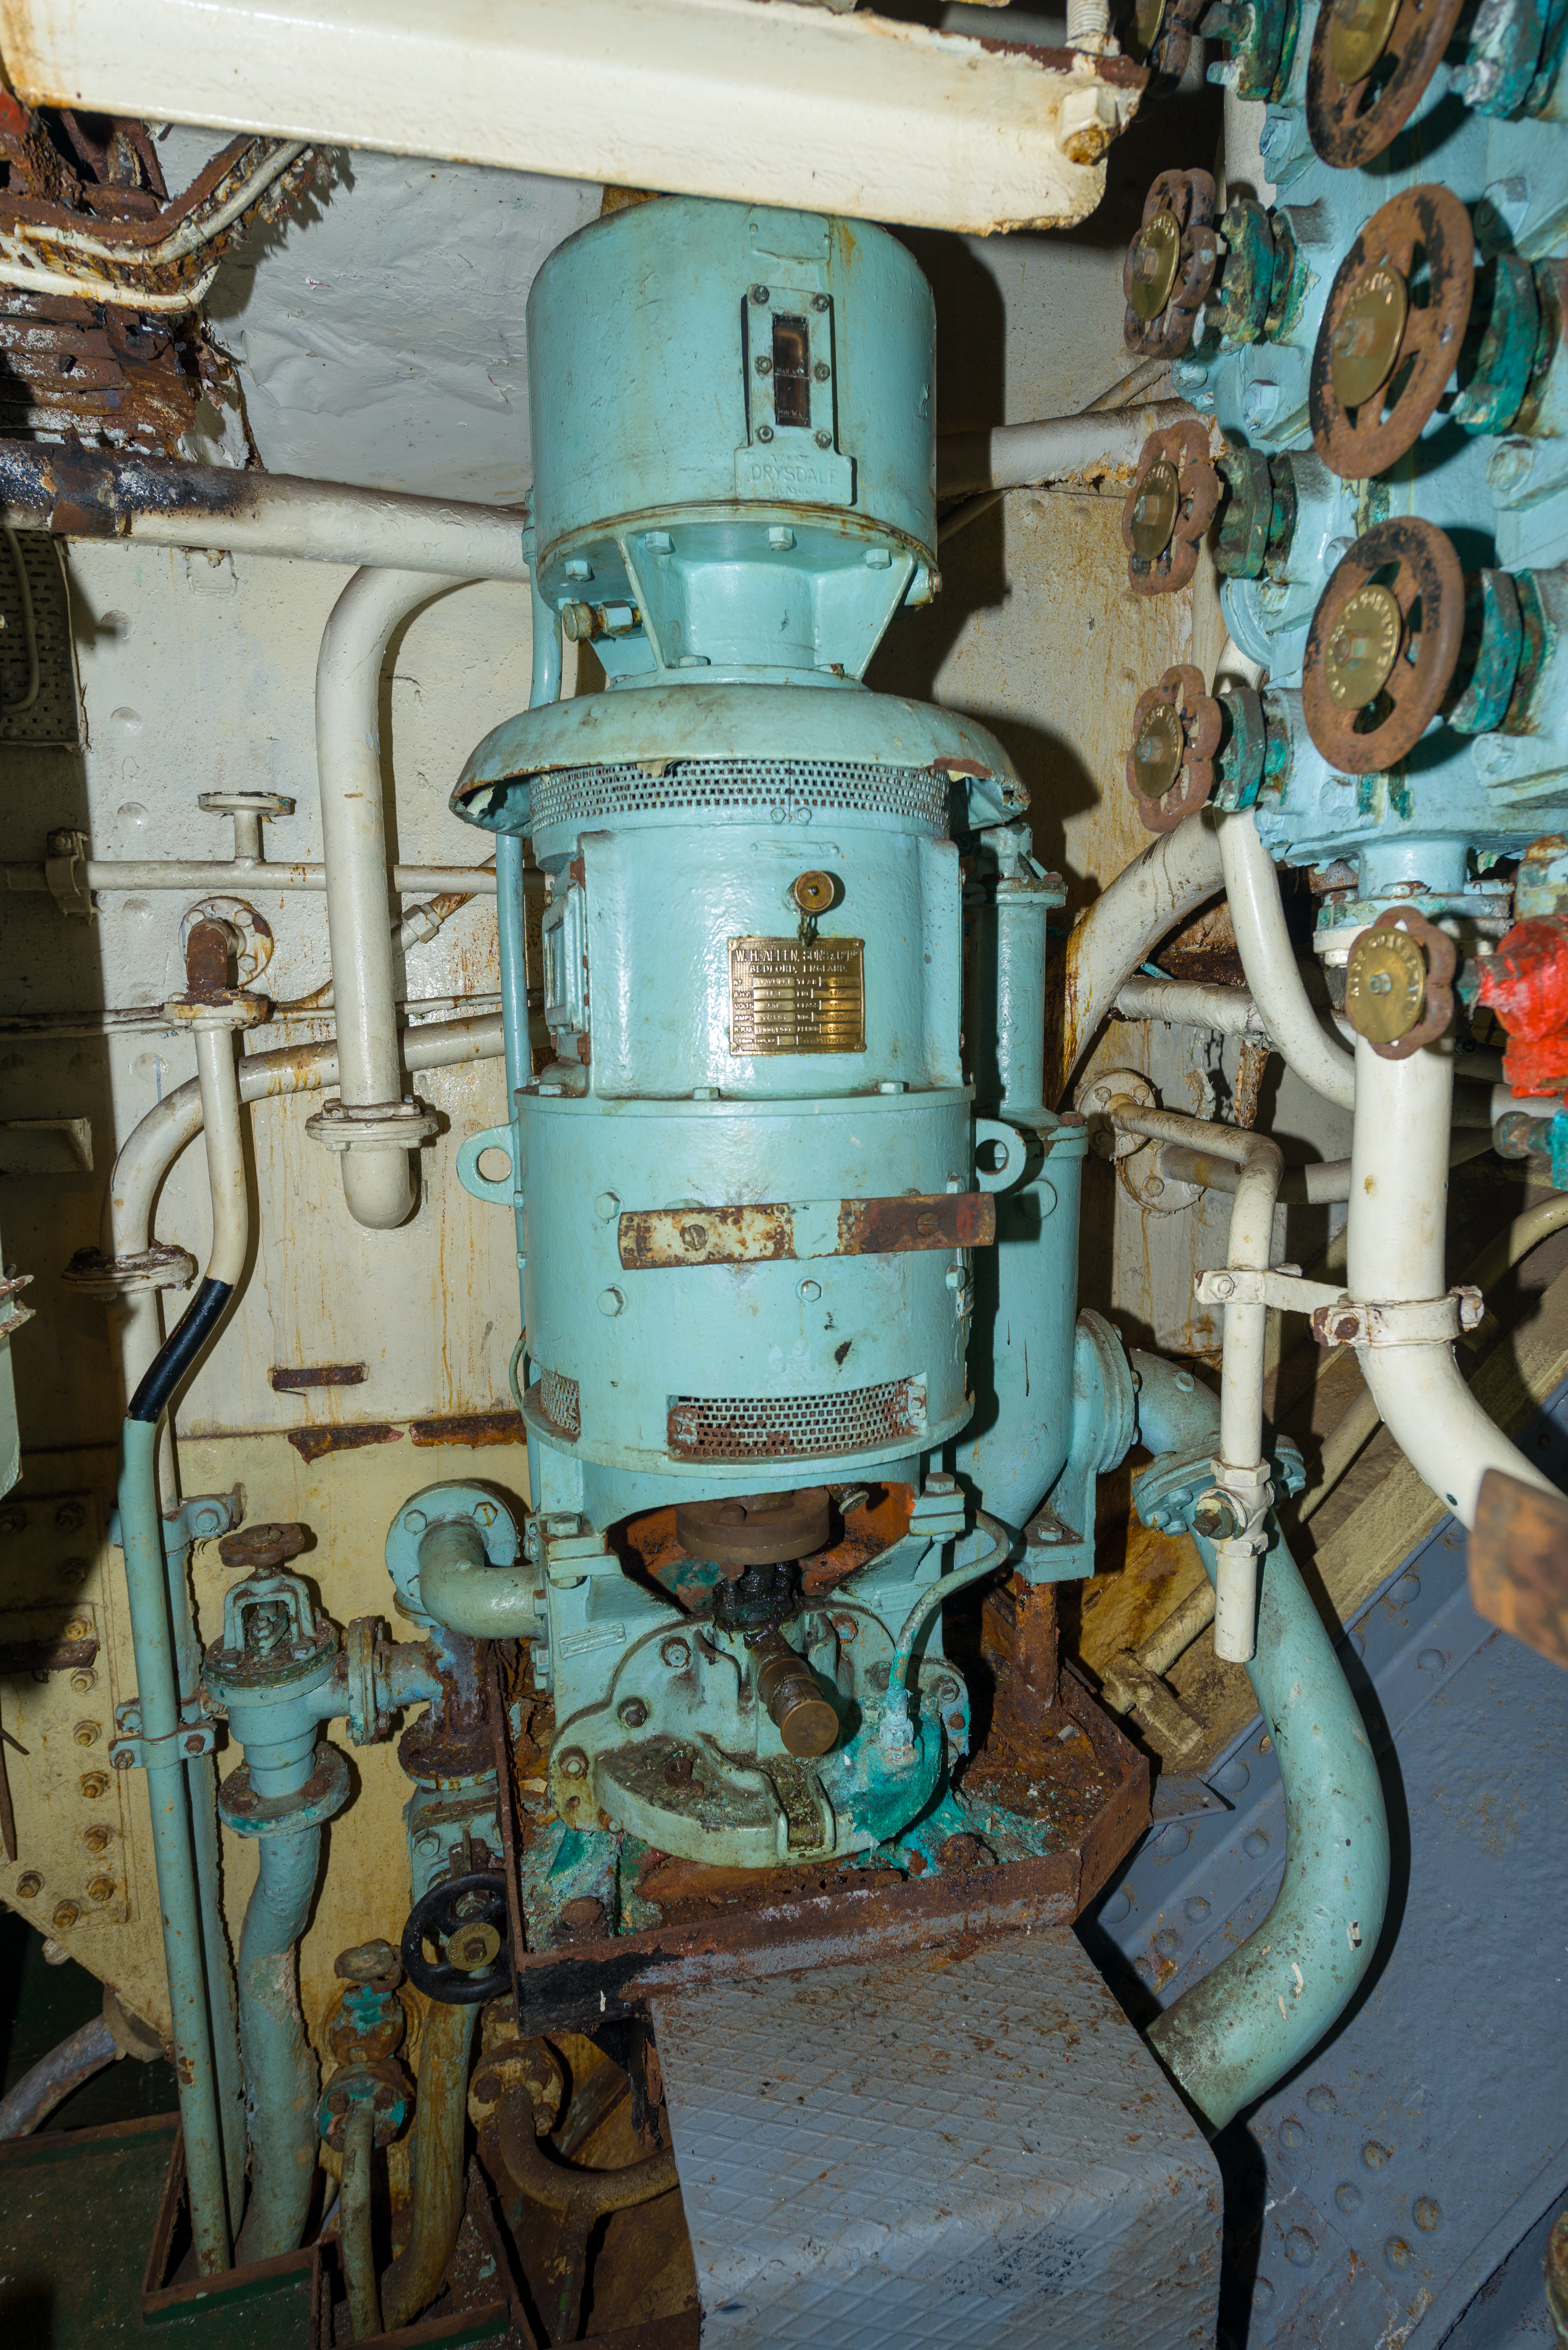 SS Explorer Aft General Service Pump